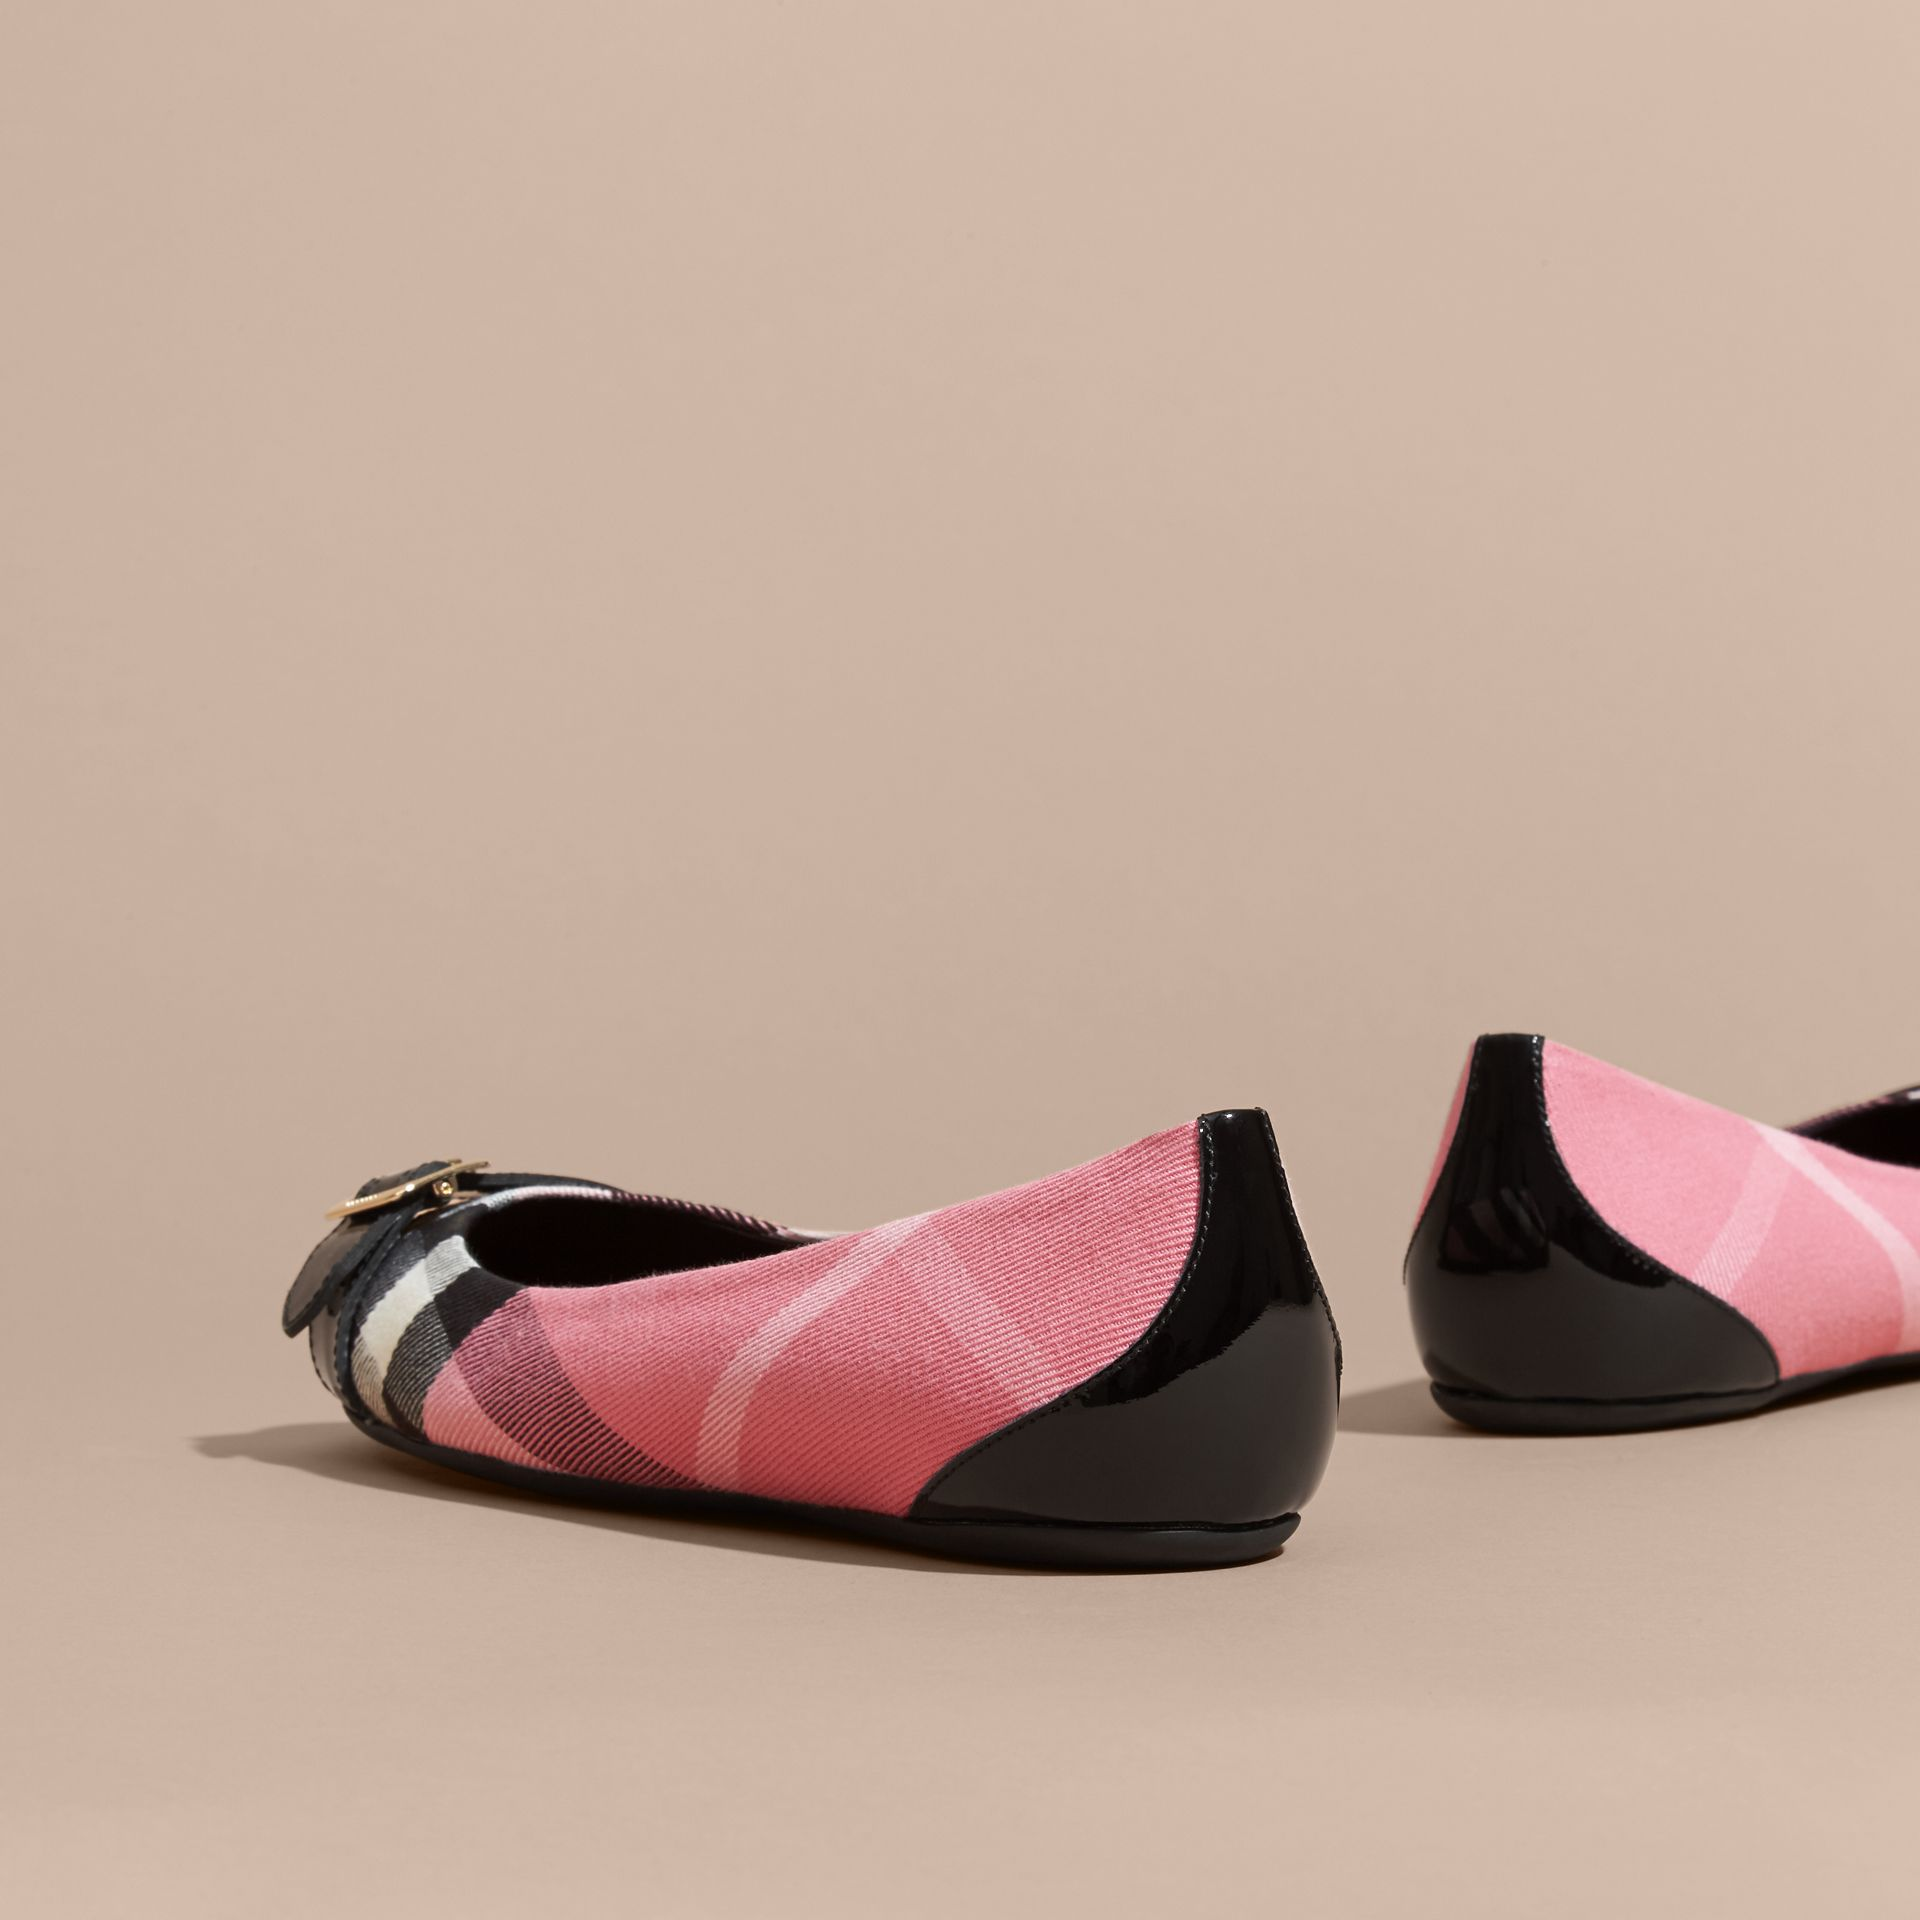 Buckle Detail House Check and Patent Leather Ballerinas Rose Pink - gallery image 4